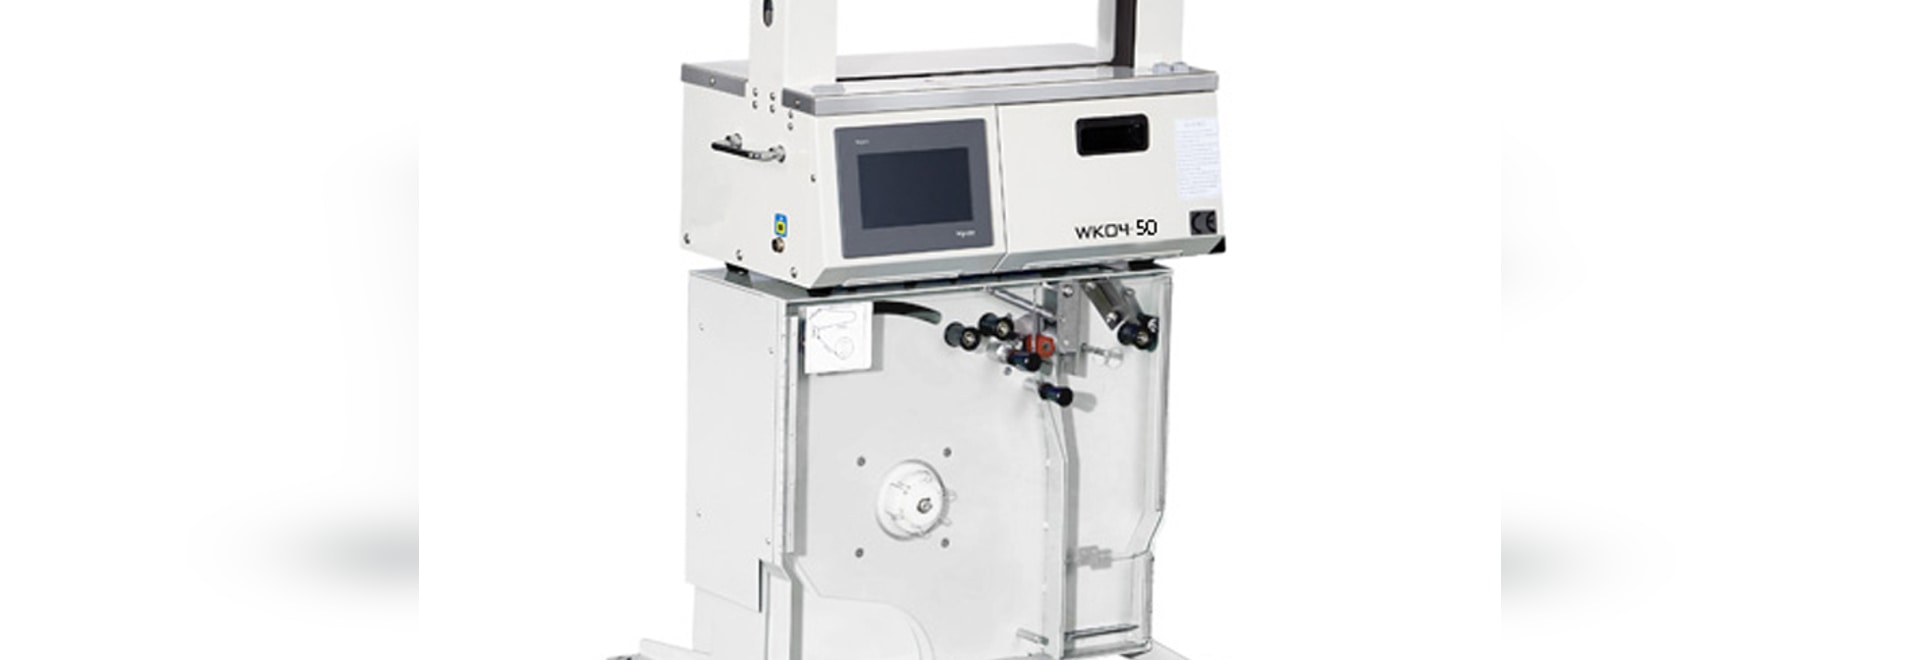 WK04-50 Banding machine